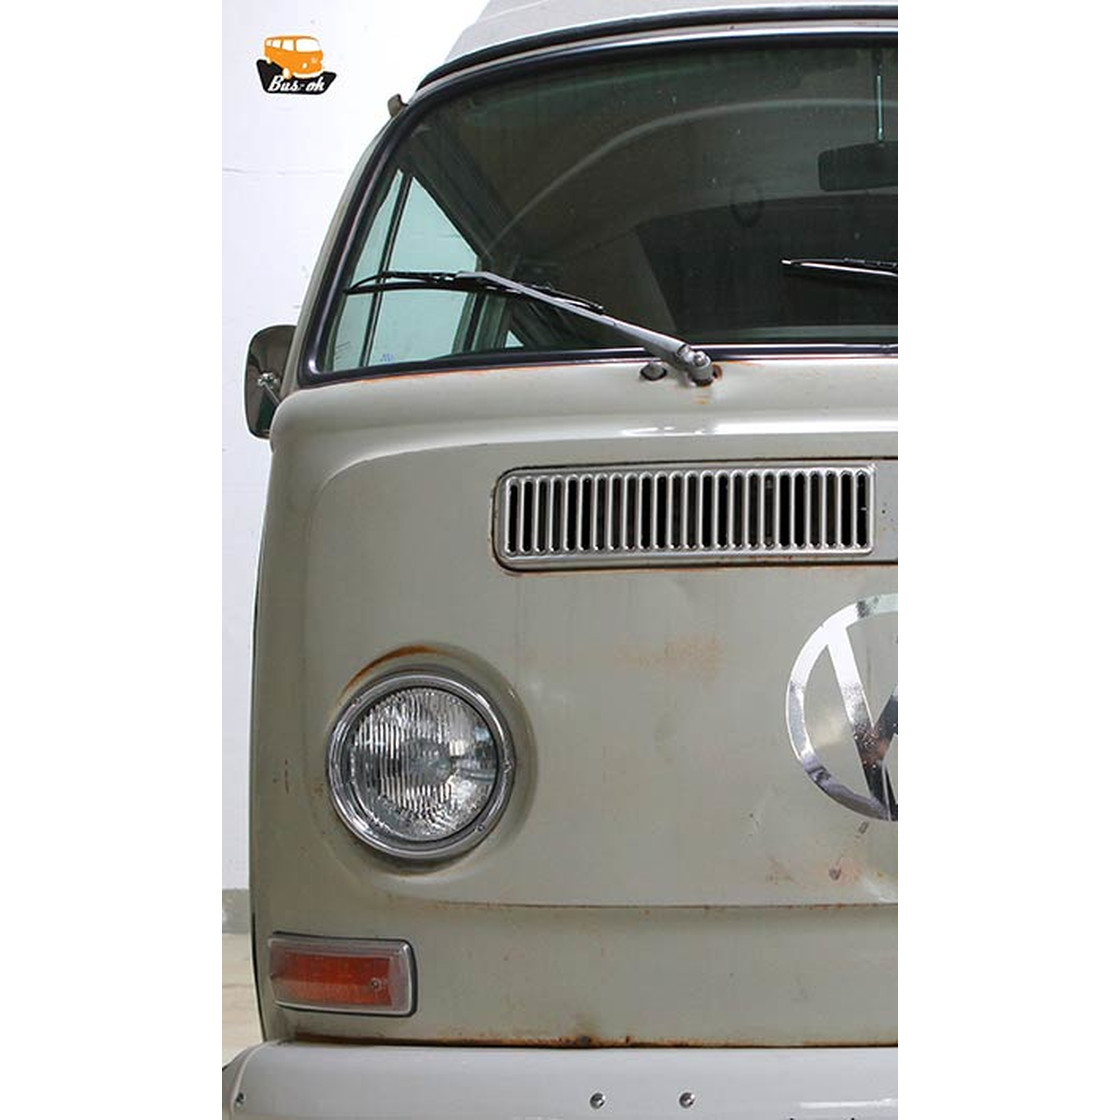 typ2-early-bay-window-air-intake-front-chrome-grille-67-72_2.jpg, 144.82 kb, 1120 x 1120